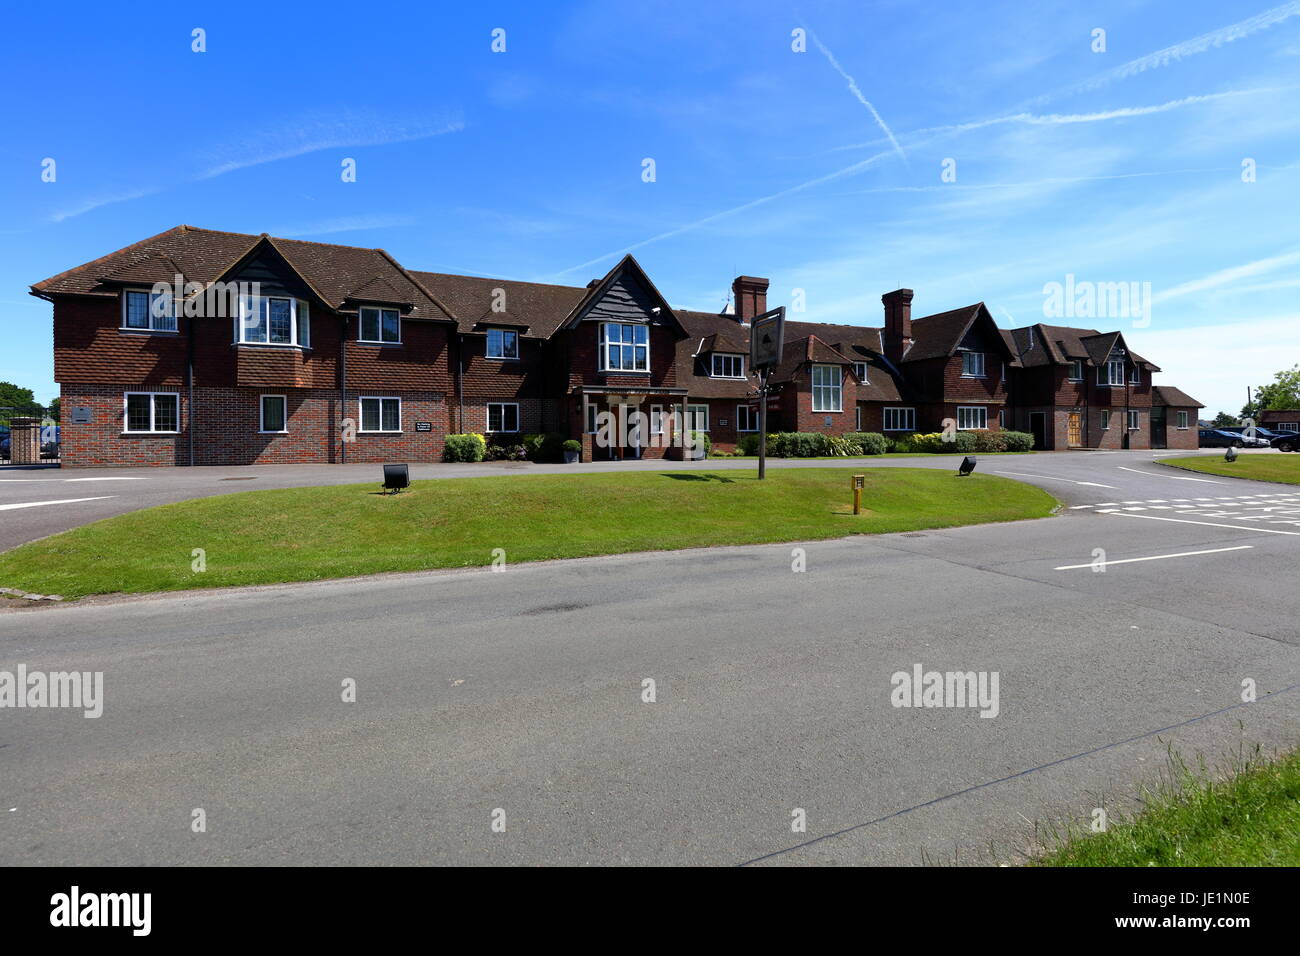 The clubhouse for Sonning Golf club near the village of Sonning in Berkshire - Stock Image